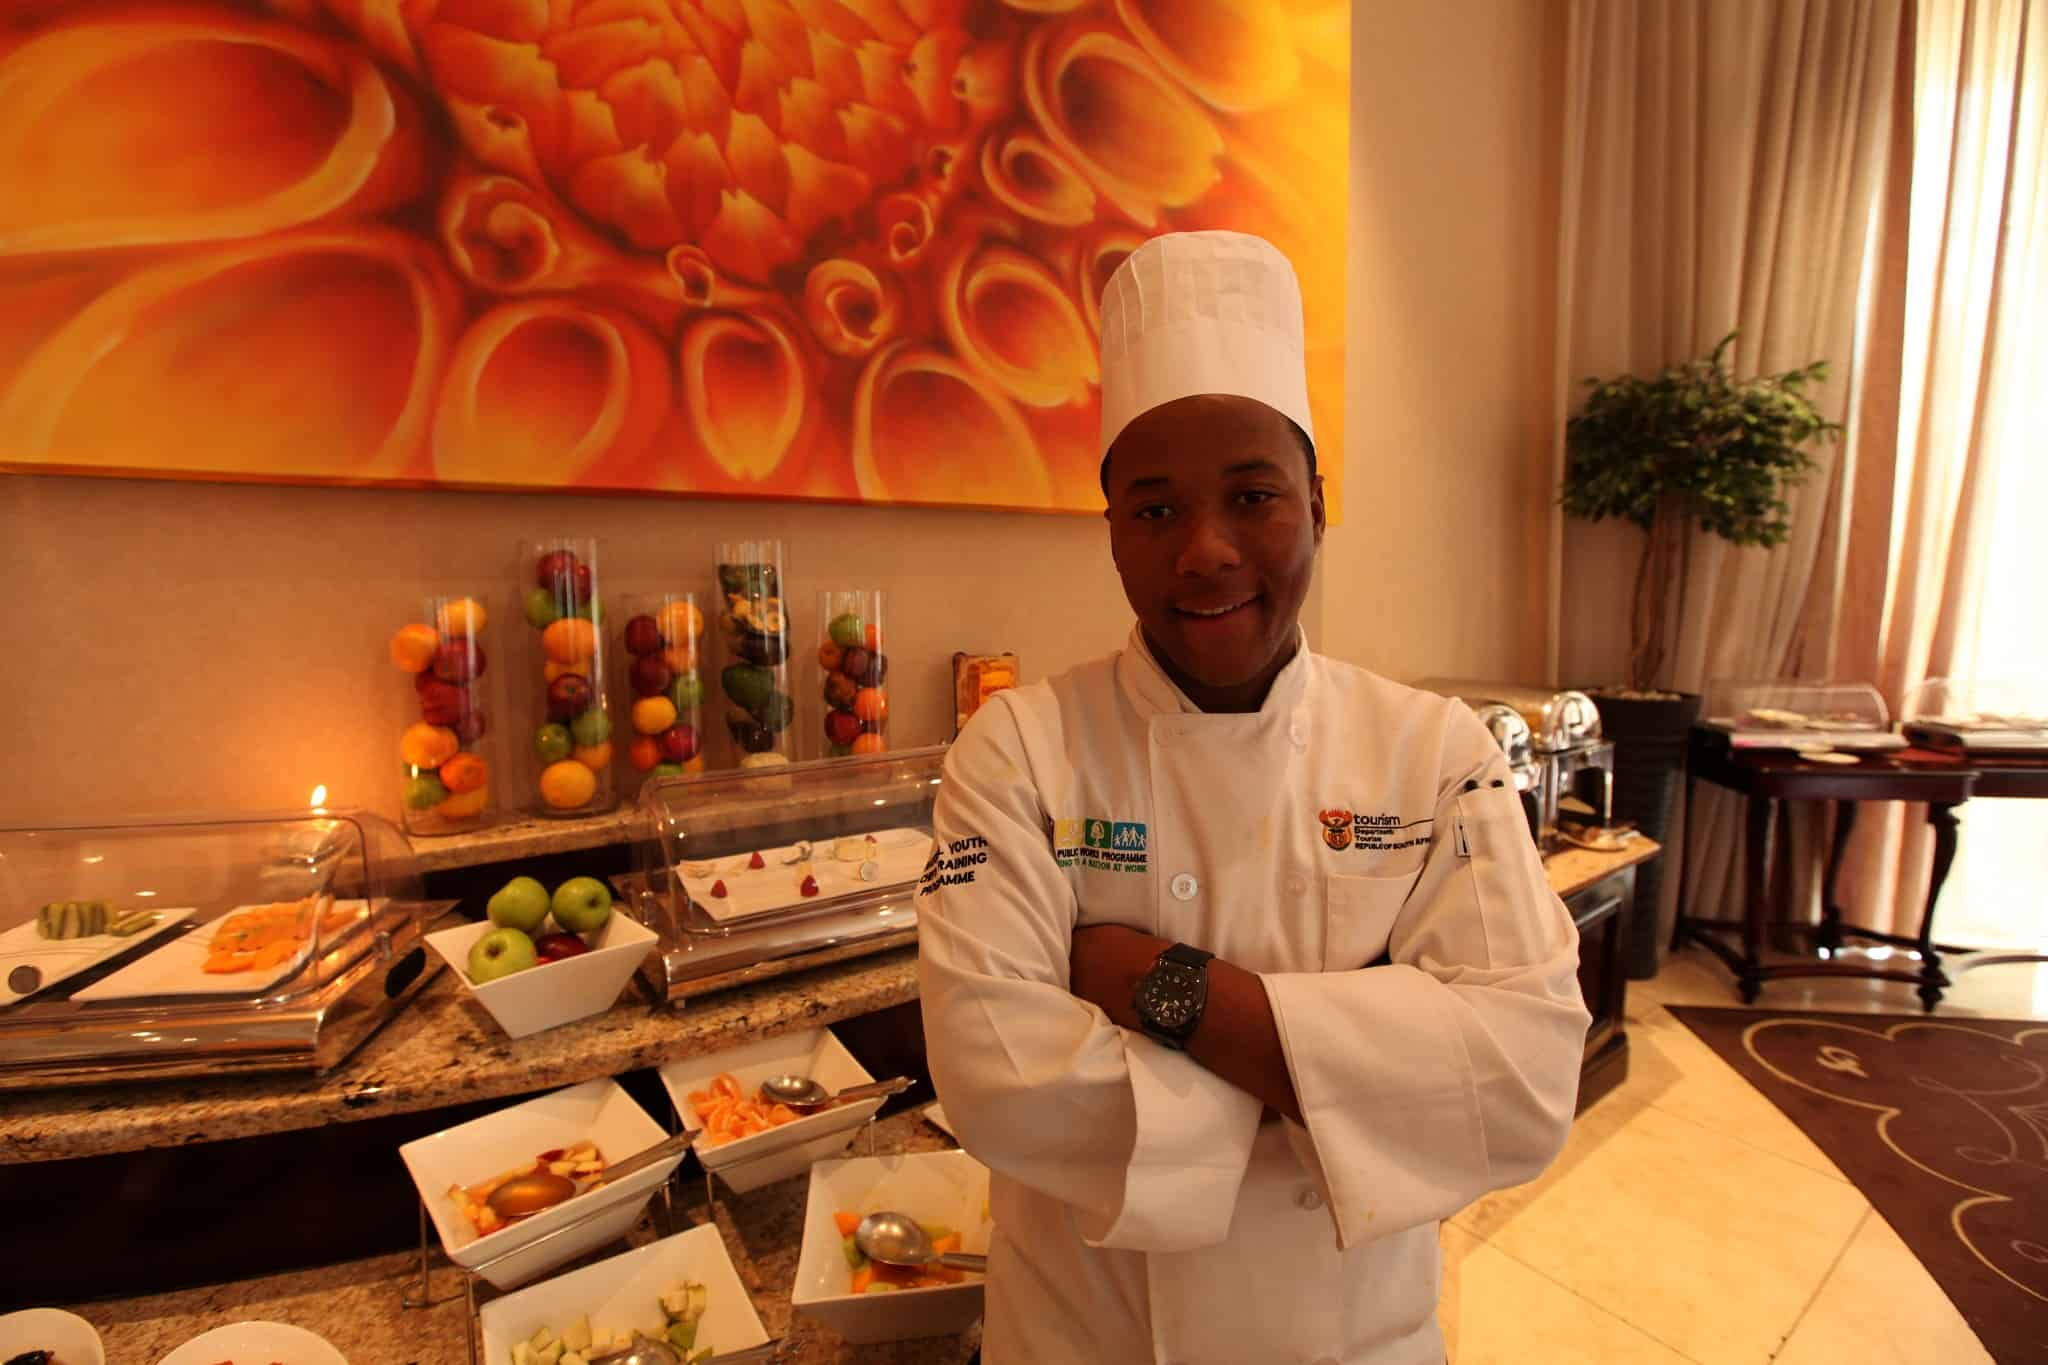 Luxolo Tabata - Young Chefs at Silverstar casino